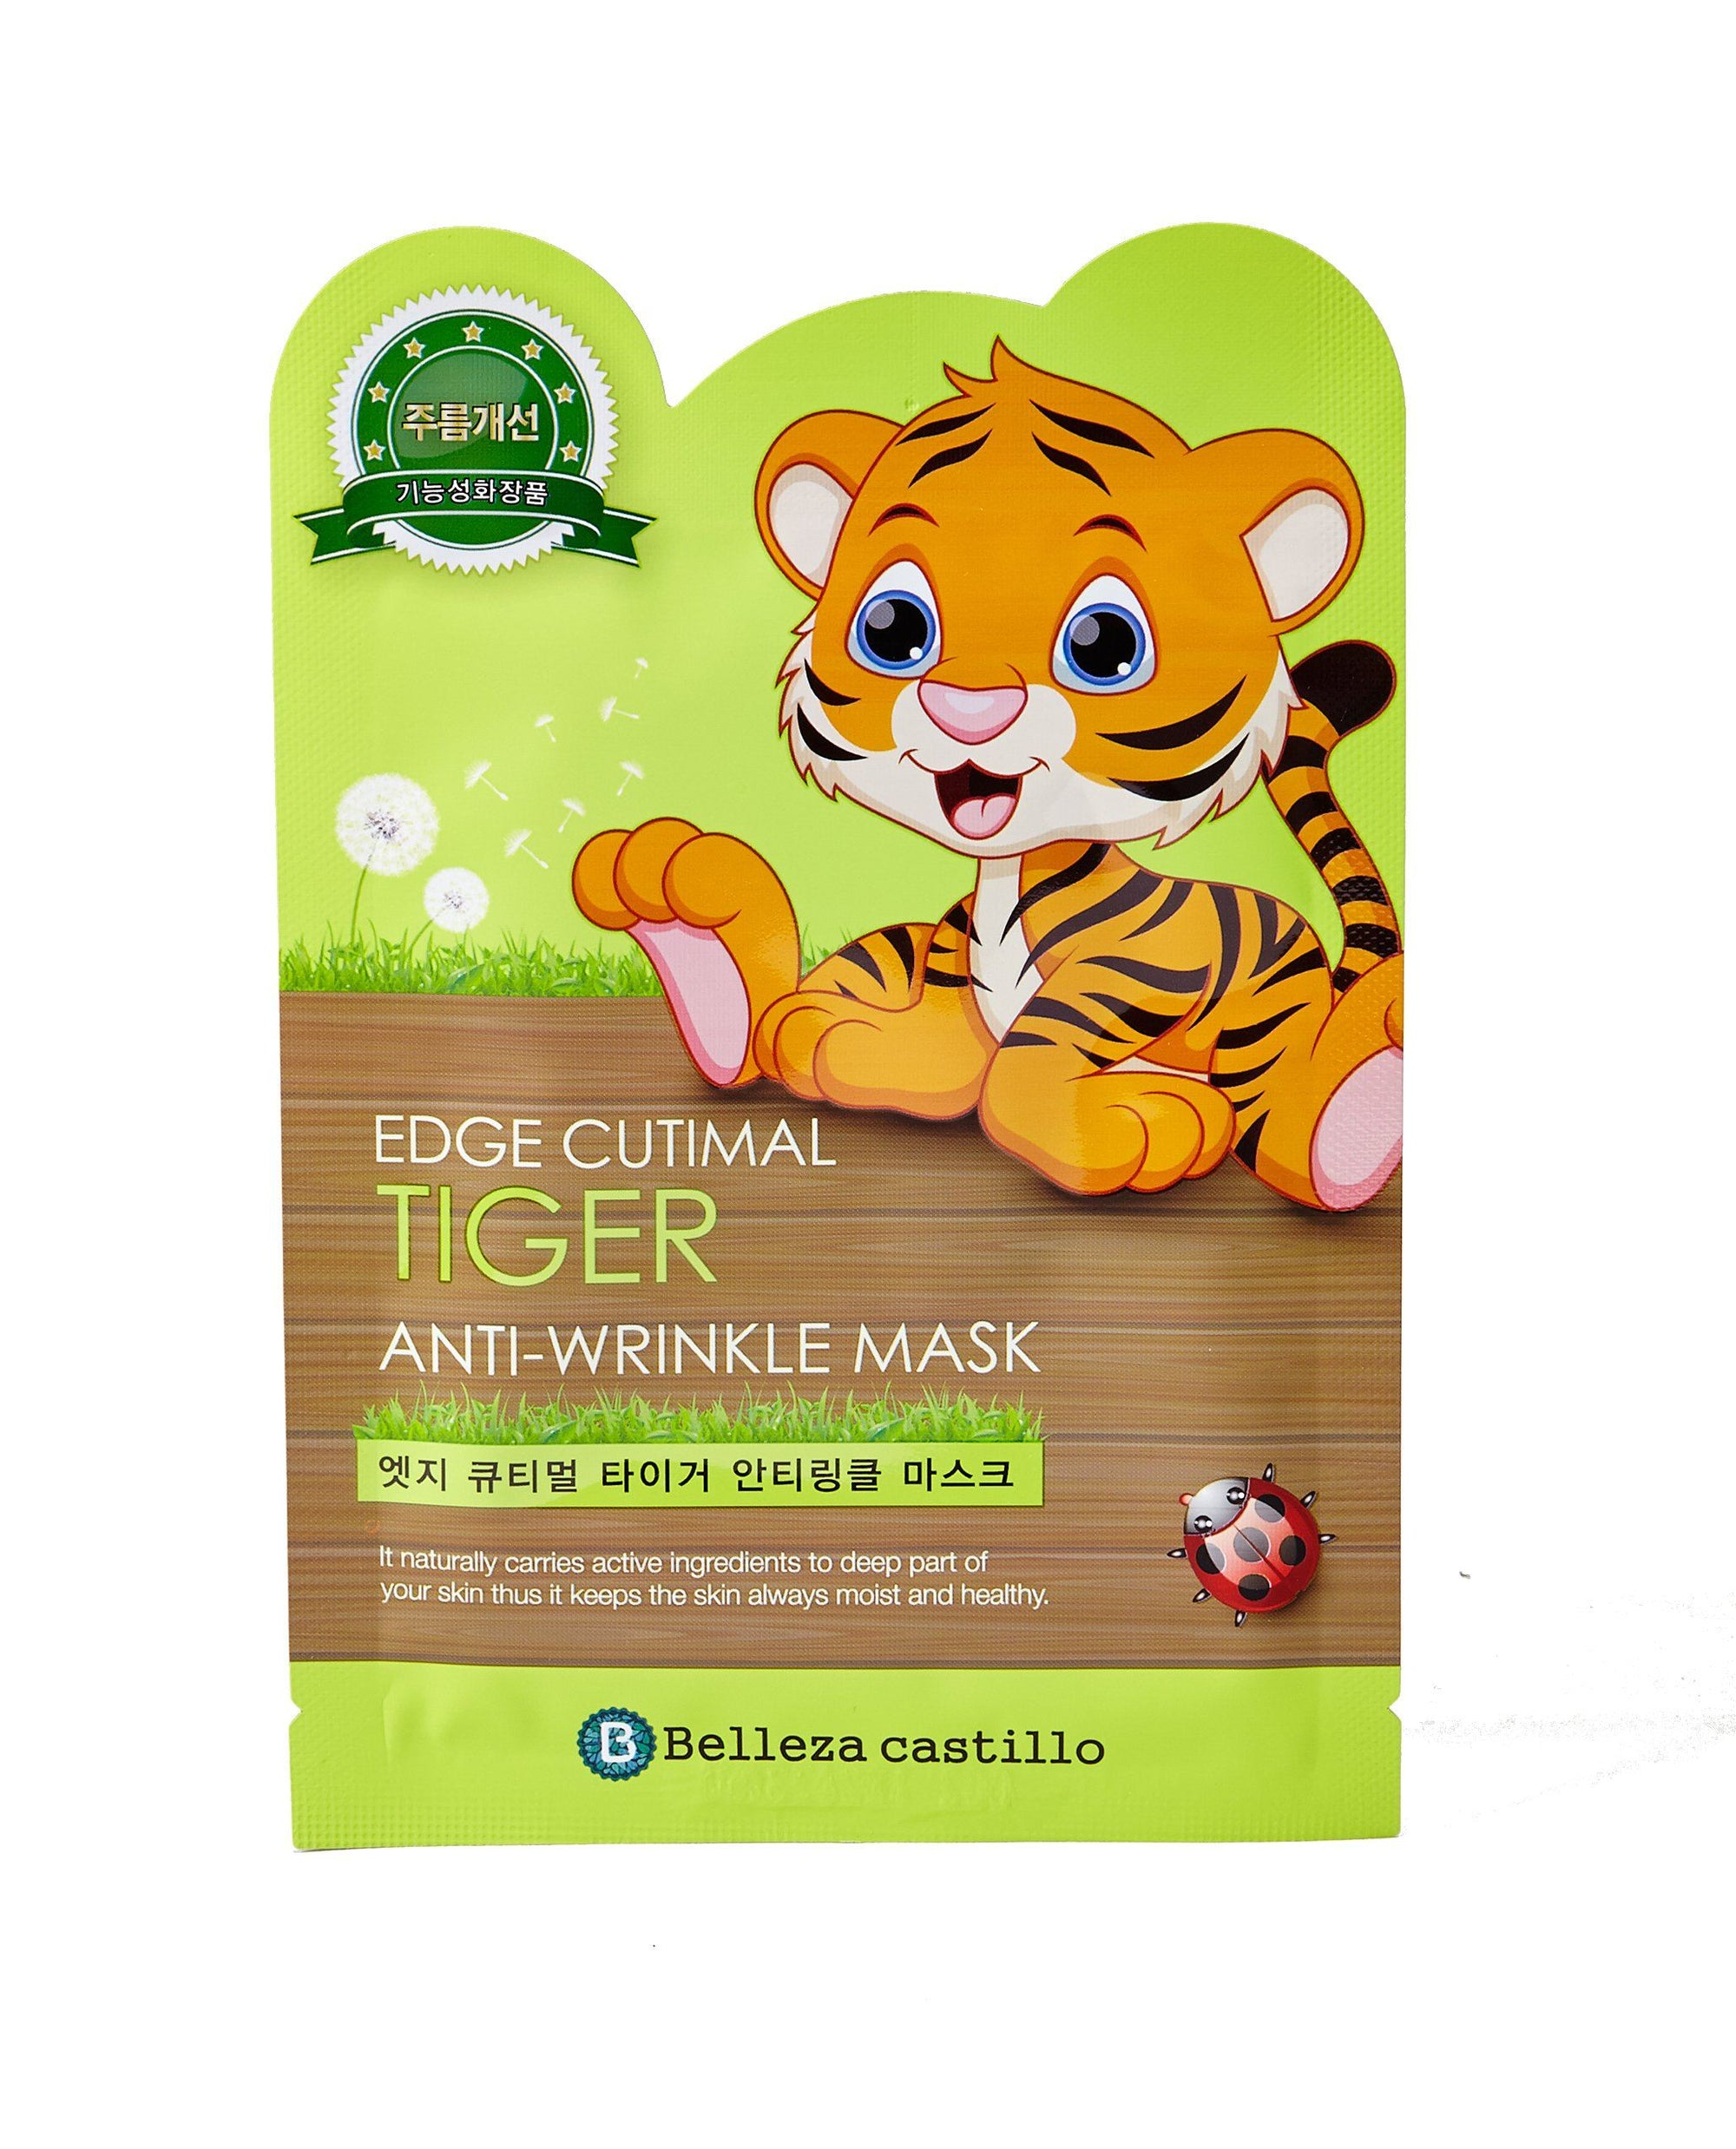 Health & Beauty > Personal Care > Cosmetics > Skin Care > Compressed Skin Care Mask Sheets - Edge Cutimal TIGER Anti-Wrinkle Mask Maska W Płachcie